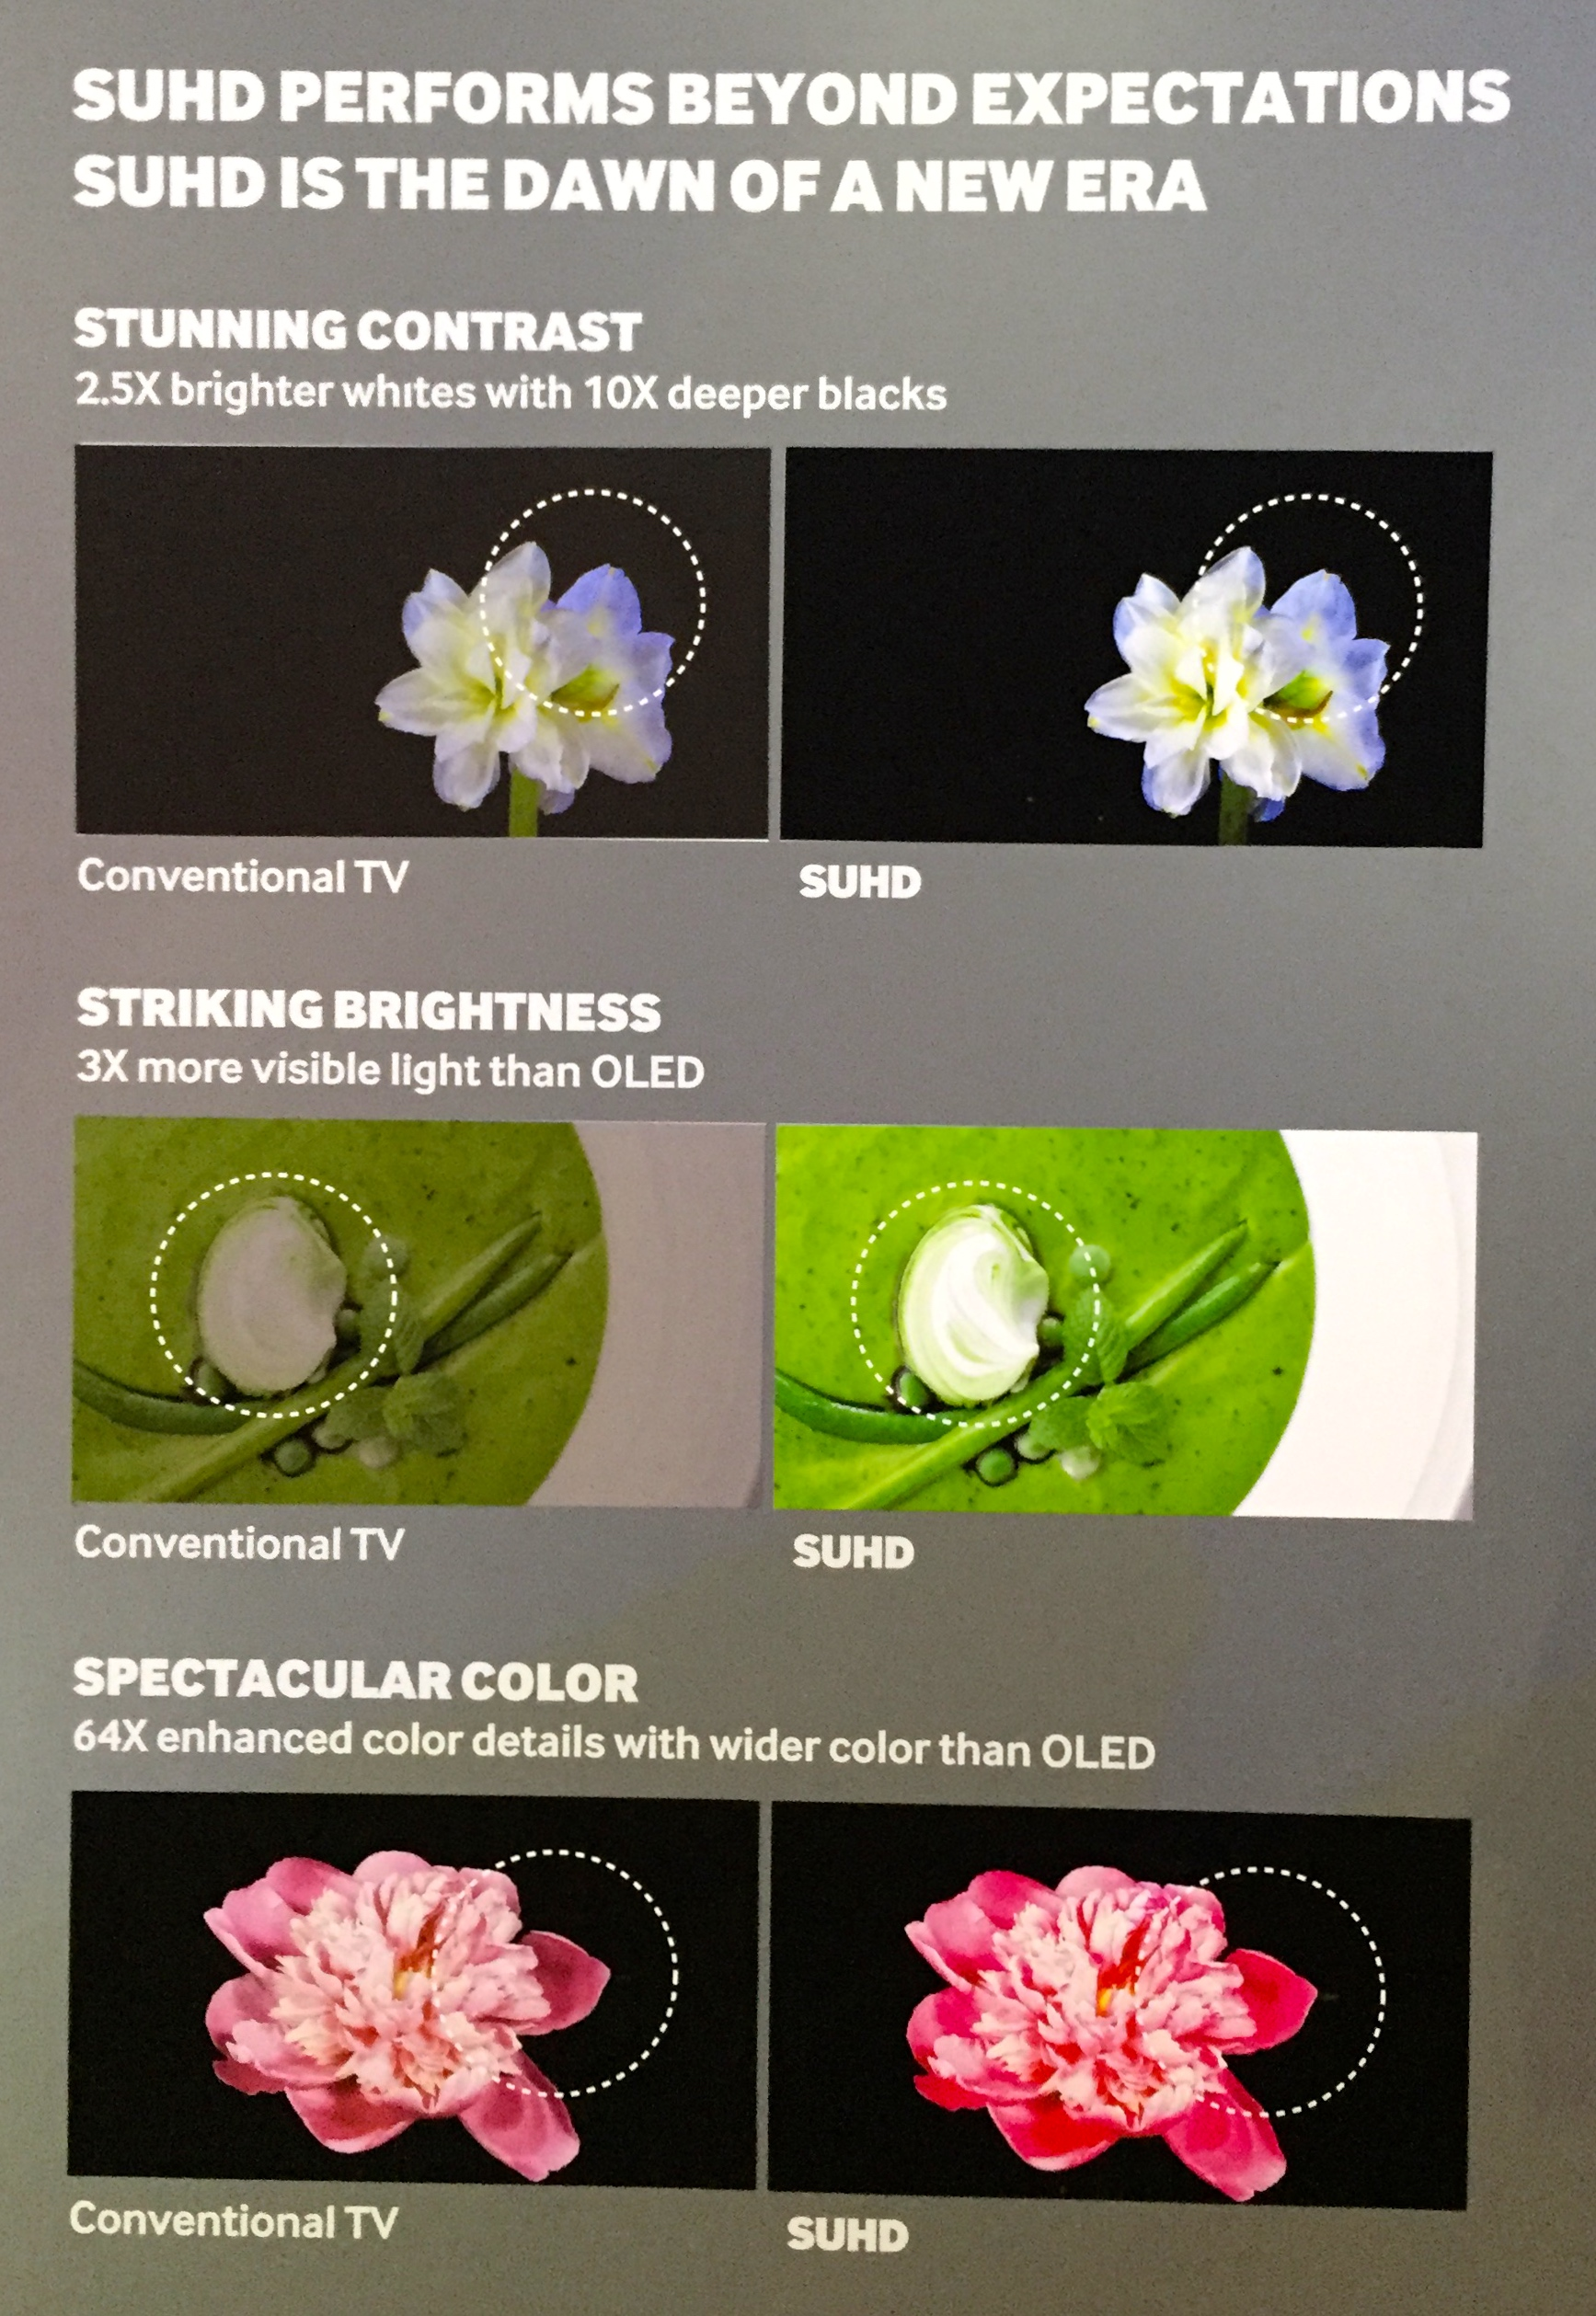 Samsung highlights the brightness, contrast and color benefits of theQuantum Dot technology in their SUHD TVs at CES 2015